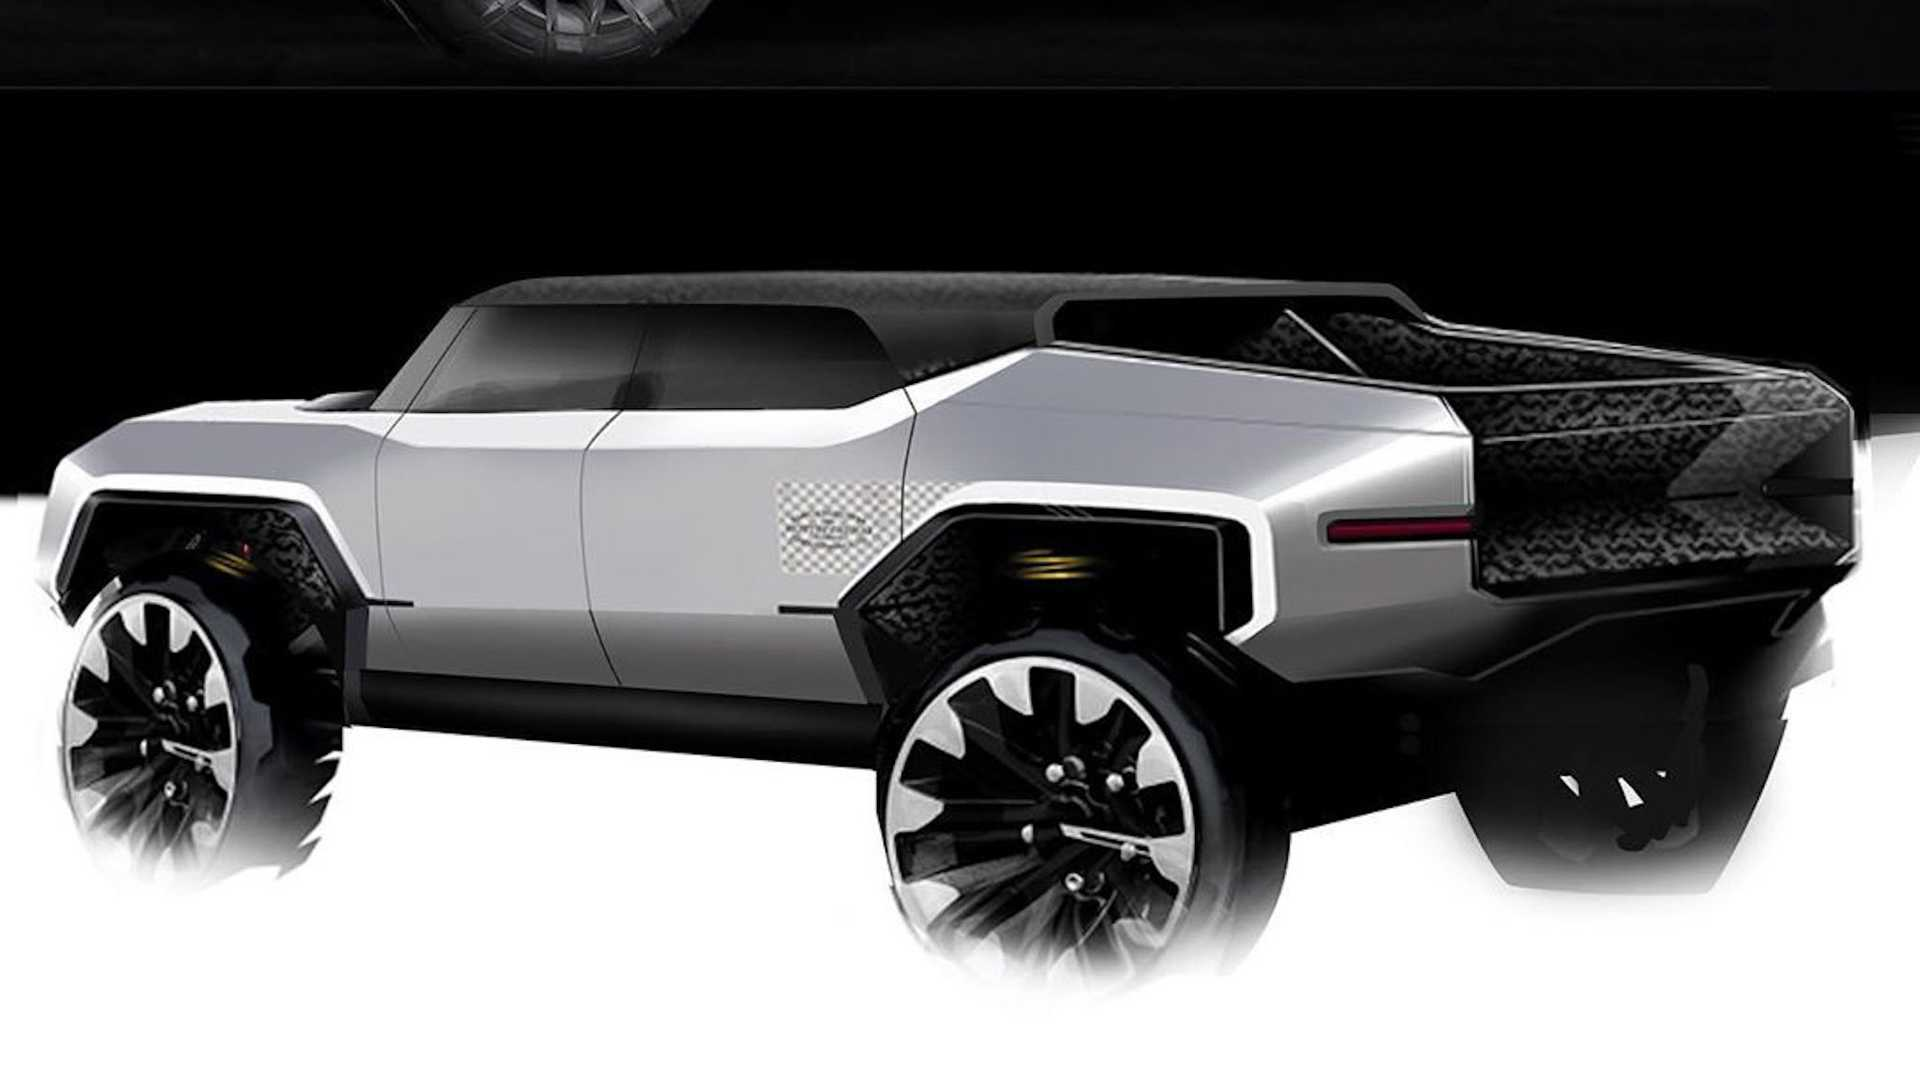 2022-gmc-hummer-ev-sketches-9